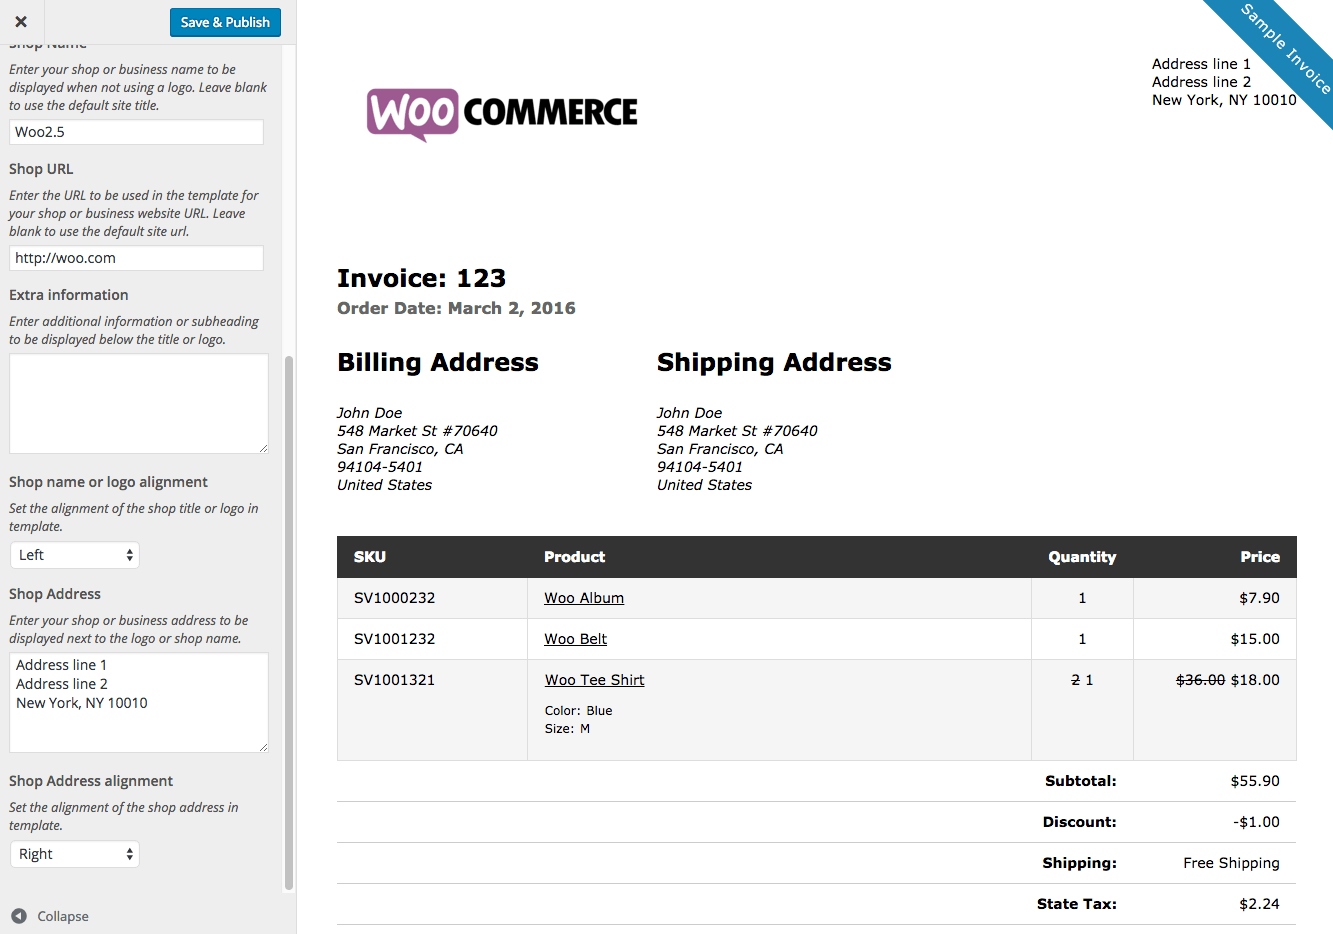 Aaaaeroincus  Marvelous Woocommerce Print Invoices Amp Packing Lists  Woocommerce Docs With Glamorous Woocommerce Print Invoices  Packing Lists Customizer With Alluring Correct Spelling For Receipt Also Blank Receipt Template Word In Addition Will Best Buy Return Without Receipt And Proof Of Payment Receipt As Well As Receipt For Sale Additionally Child Support Receipt Form From Docswoocommercecom With Aaaaeroincus  Glamorous Woocommerce Print Invoices Amp Packing Lists  Woocommerce Docs With Alluring Woocommerce Print Invoices  Packing Lists Customizer And Marvelous Correct Spelling For Receipt Also Blank Receipt Template Word In Addition Will Best Buy Return Without Receipt From Docswoocommercecom